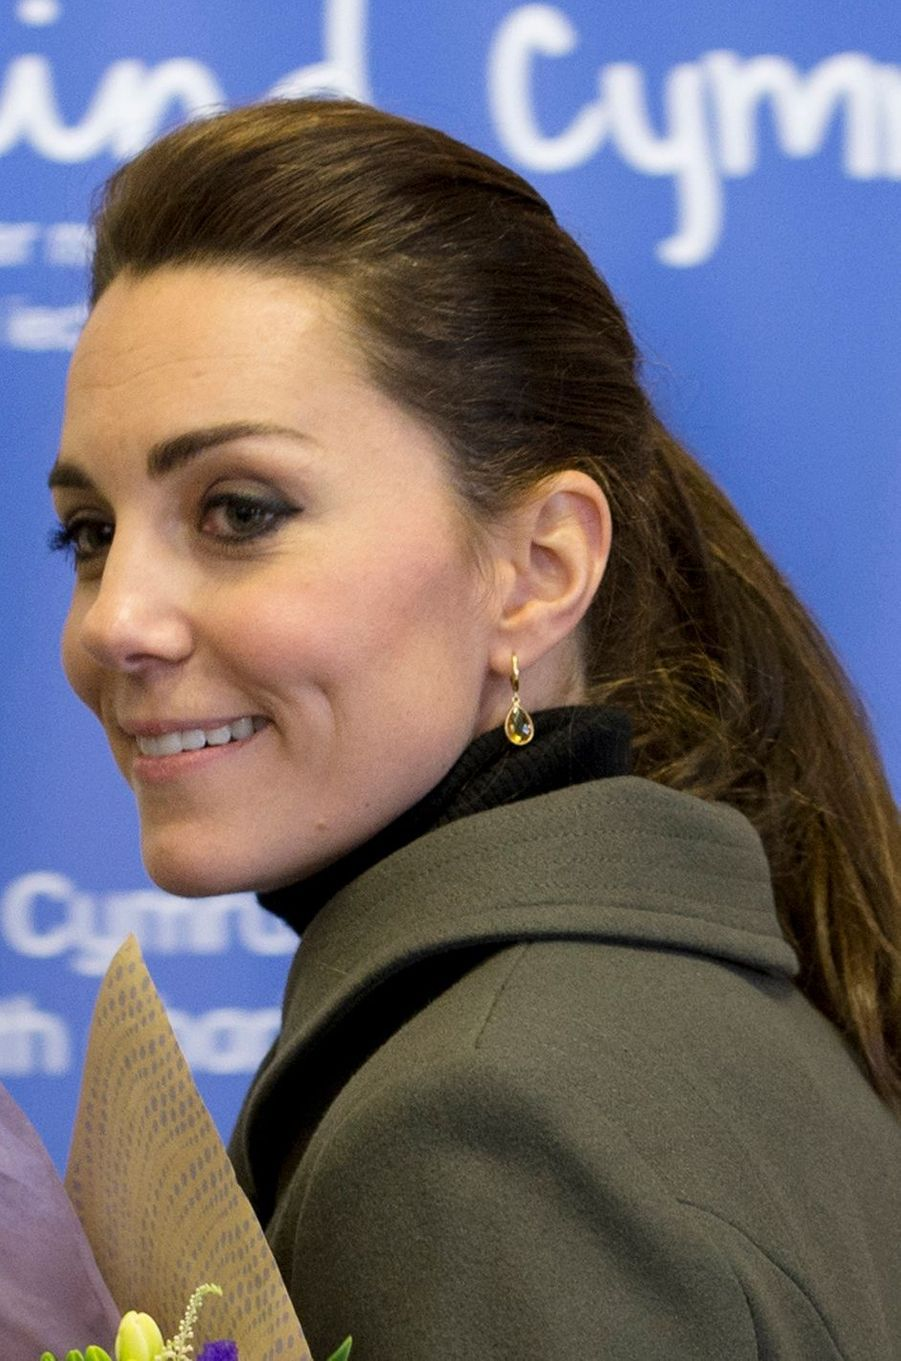 La duchesse de Cambridge, née Kate Middleton, le 20 novembre 2015